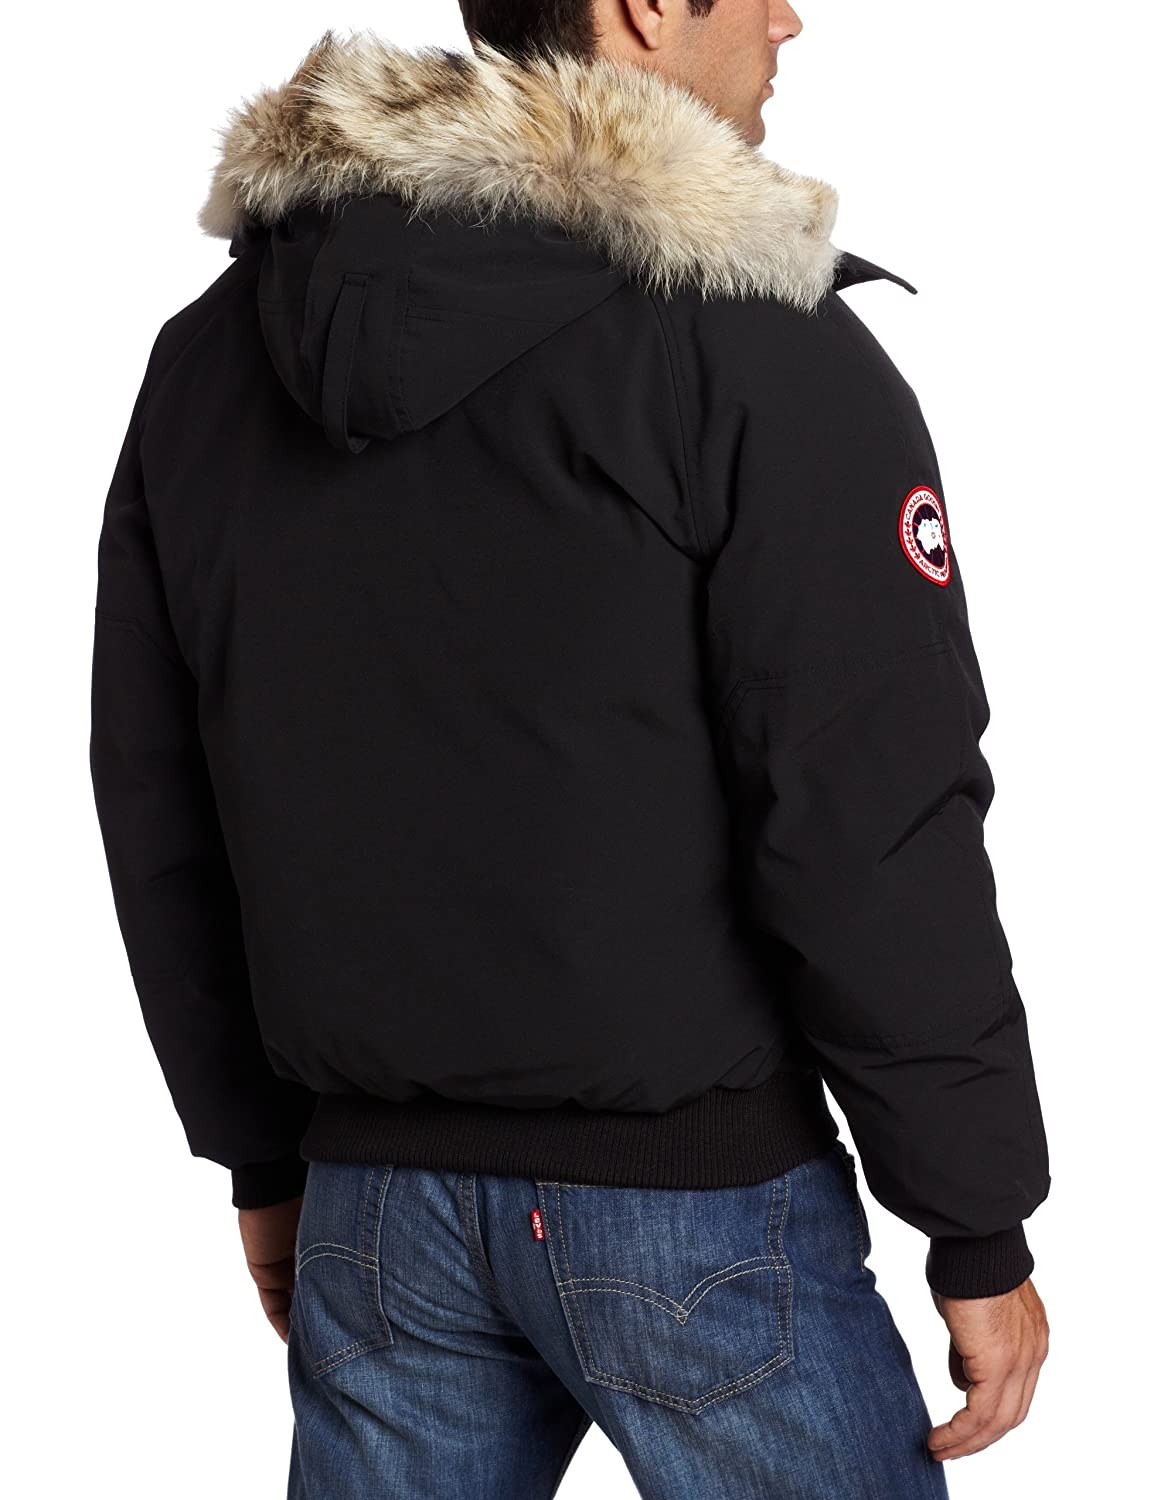 Canada Goose chateau parka online fake - Moose Knuckles Men's Down 3/4 Jacket at Amazon Men's Clothing store: